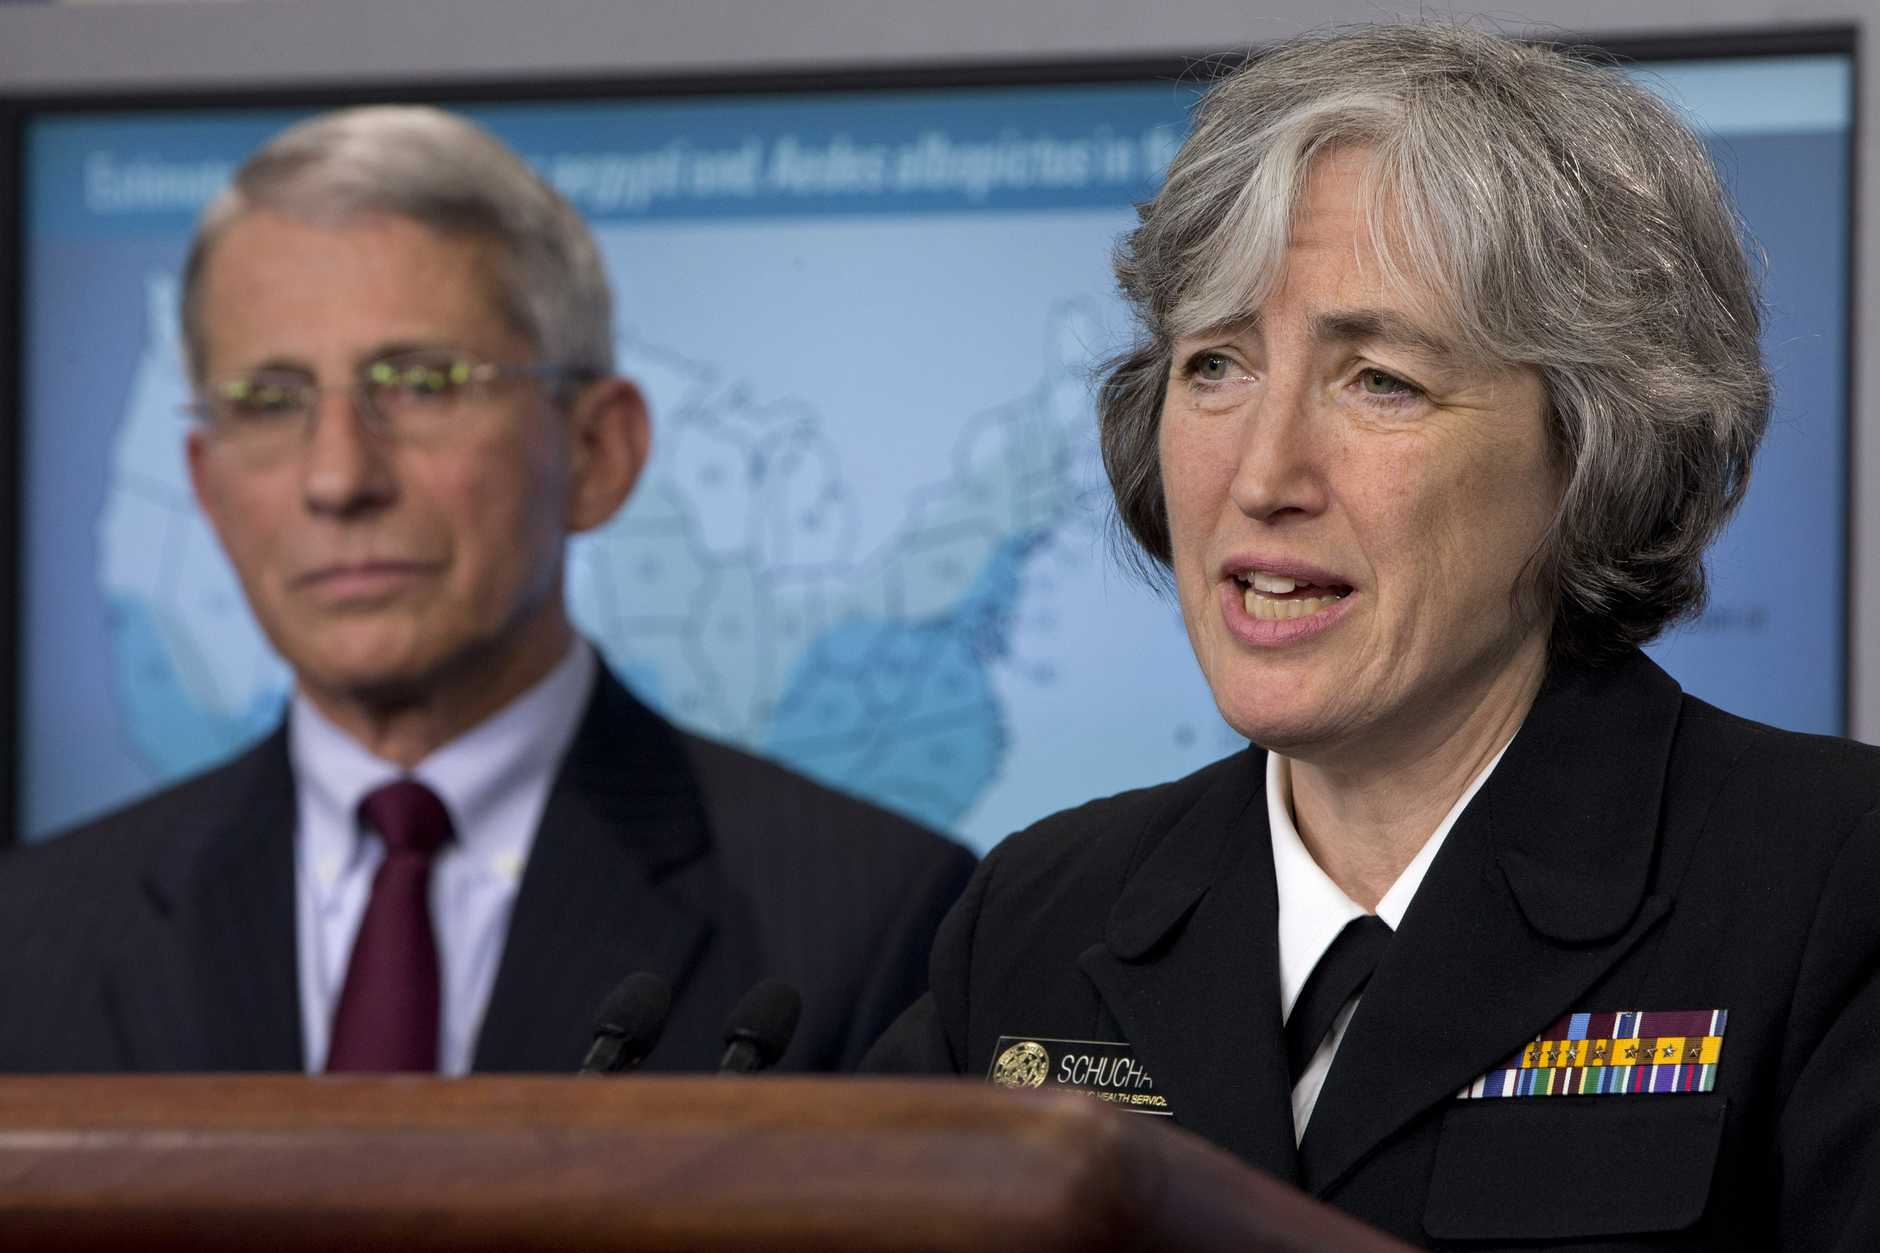 Dr. Anne Schuchat, principal deputy director of the Center for Disease Control, right, speaks about the Zika virus, accompanied by Dr. Anthony Fauci, director of NIH/NIAID during the news briefing at the White House.